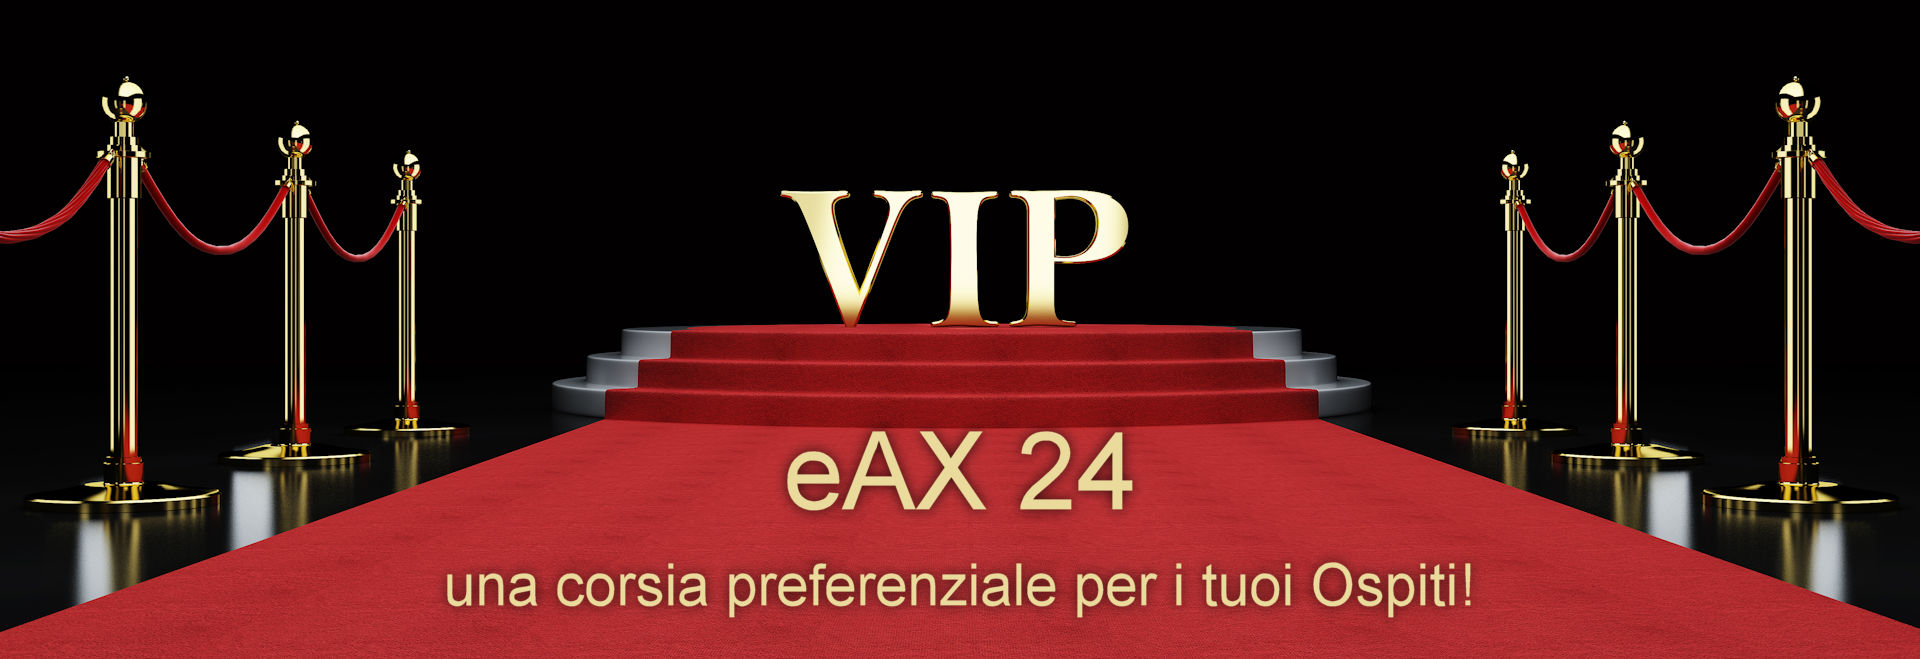 eAX24-red-carpet-big